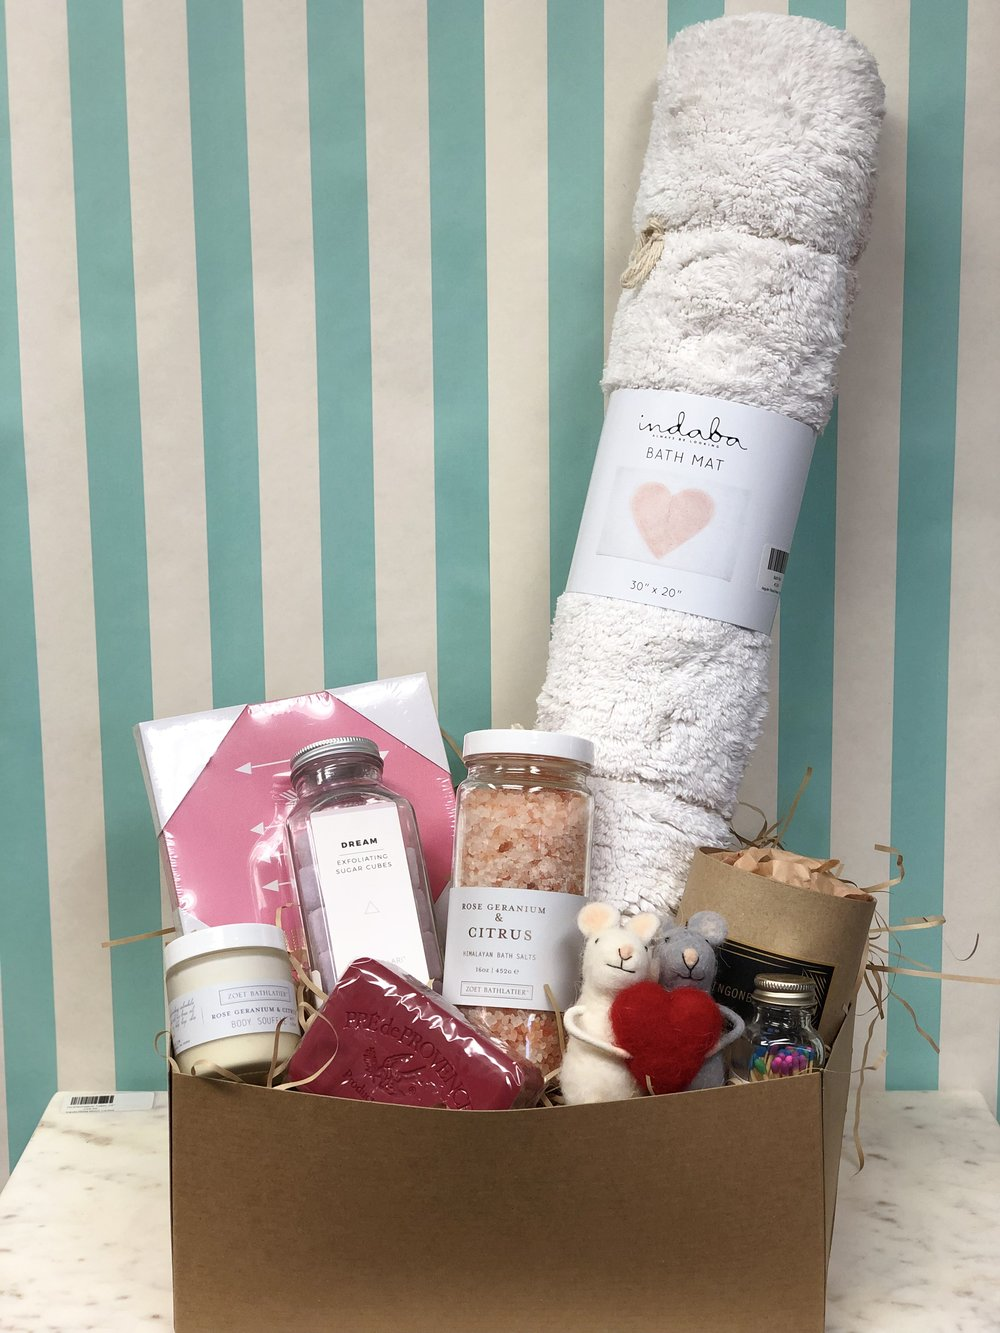 XL Box of Love- $259.99   Our Extra Large box is nothing short of spectacular. Equipped with a line of pampering products from Zoet Bathlatier, European soap, Harper+Ari Exfoliating Sugar Cubes, and a love themed bath mat, this gift box is sure to be a home run.